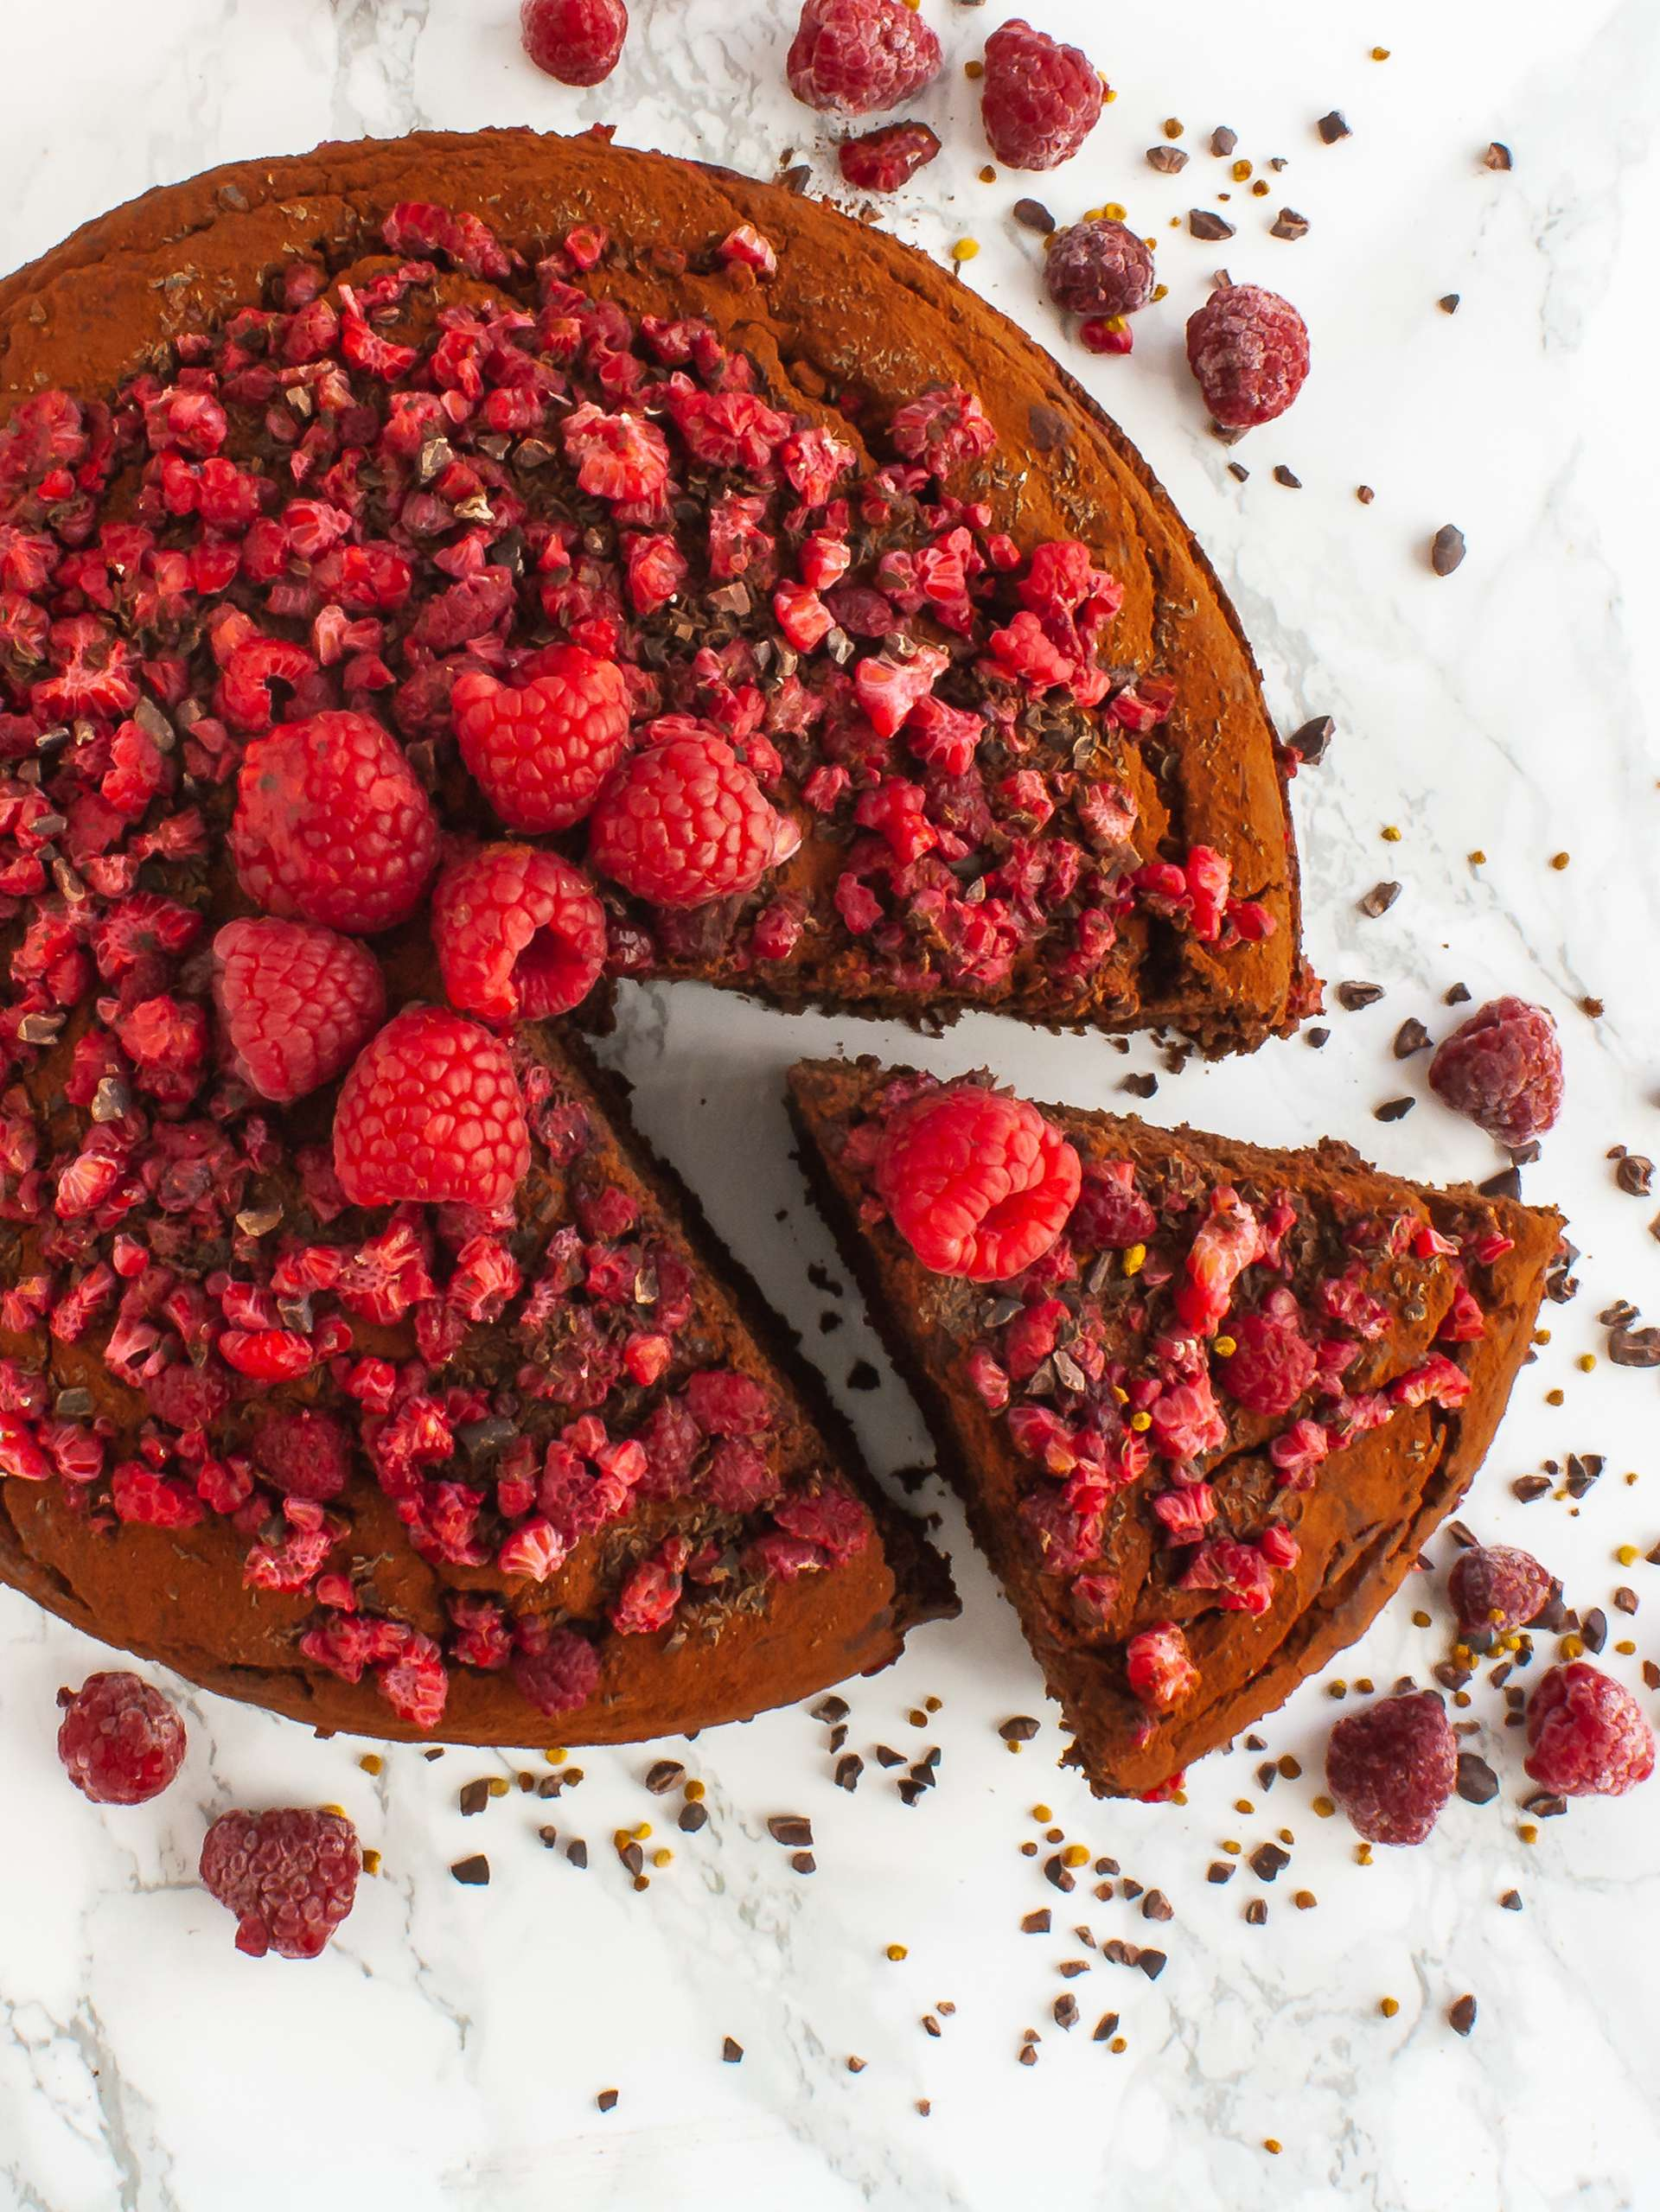 Vegan Chocolate Raspberry Cake Recipe